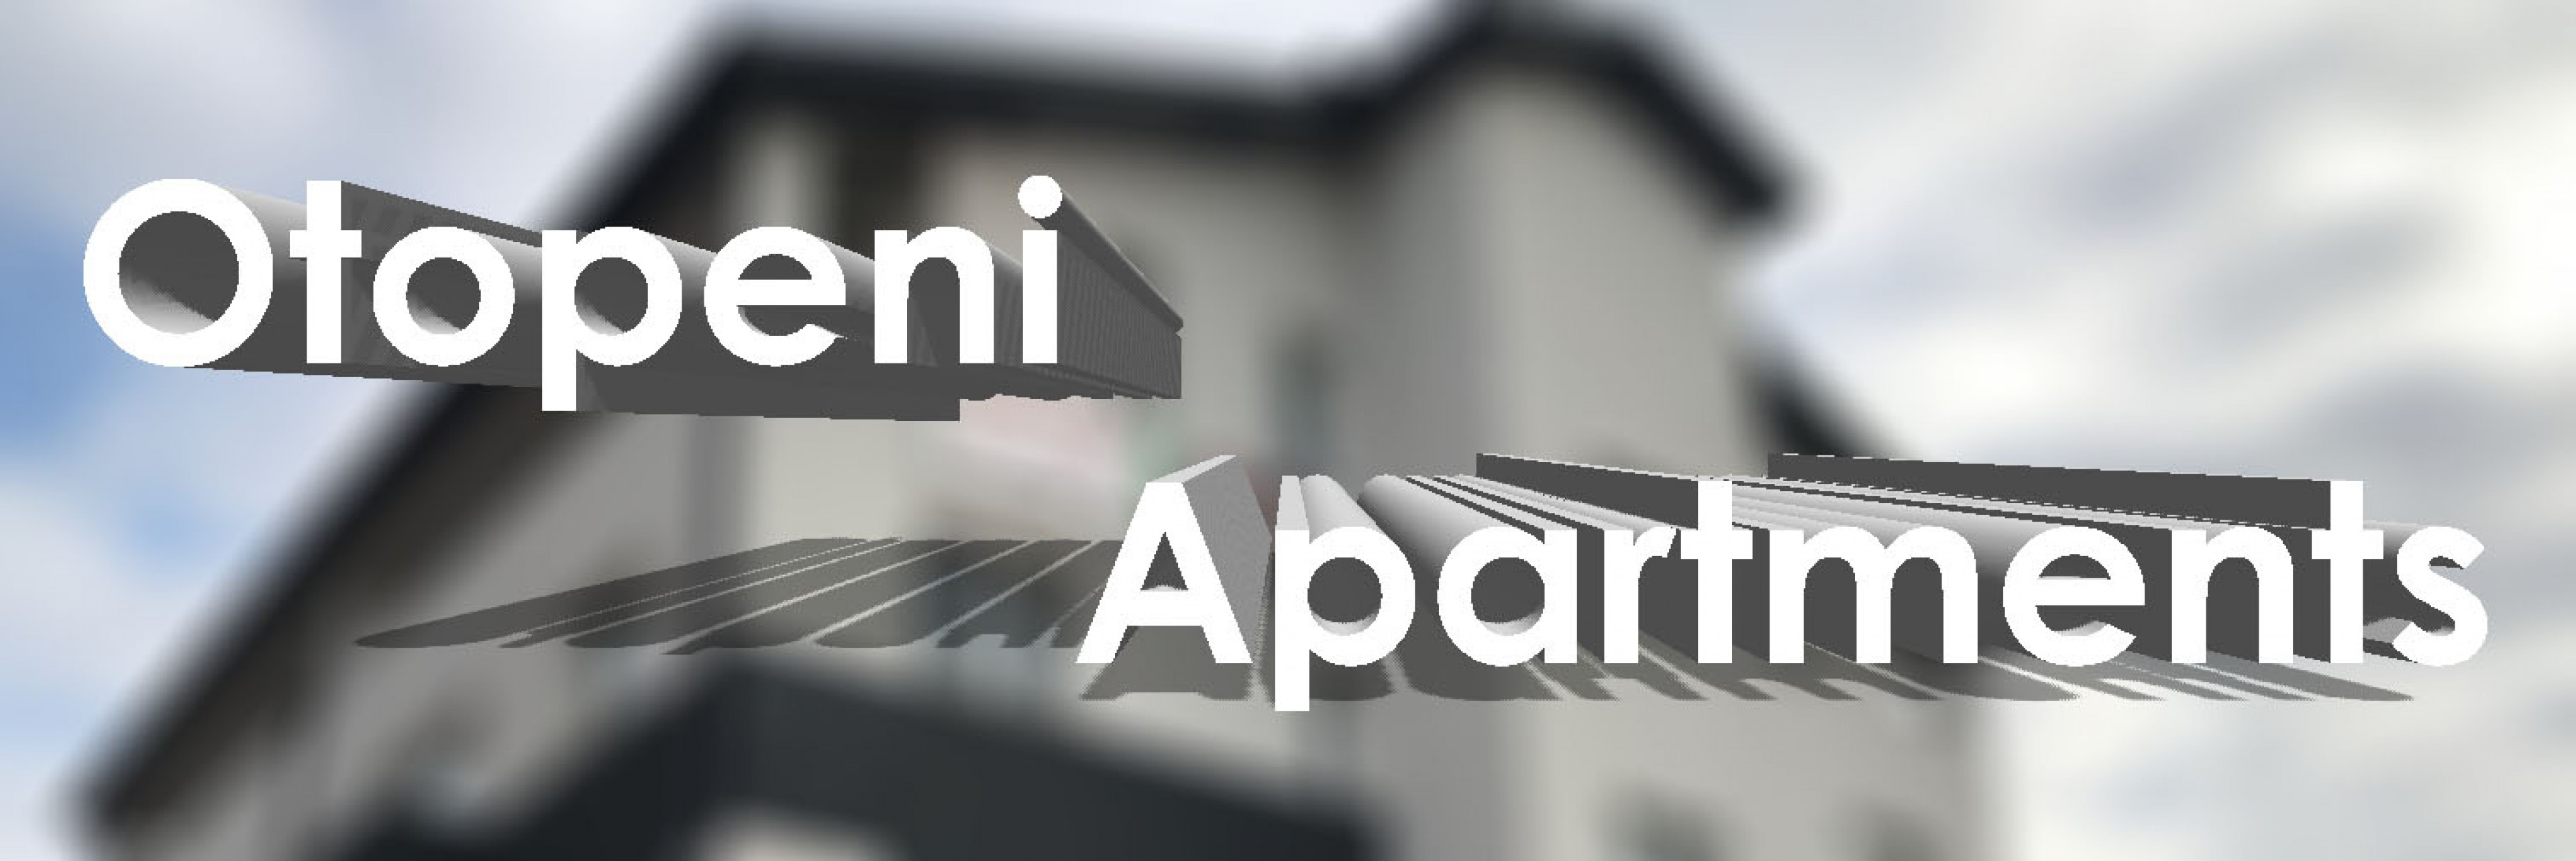 Logo Otopeni Apartments